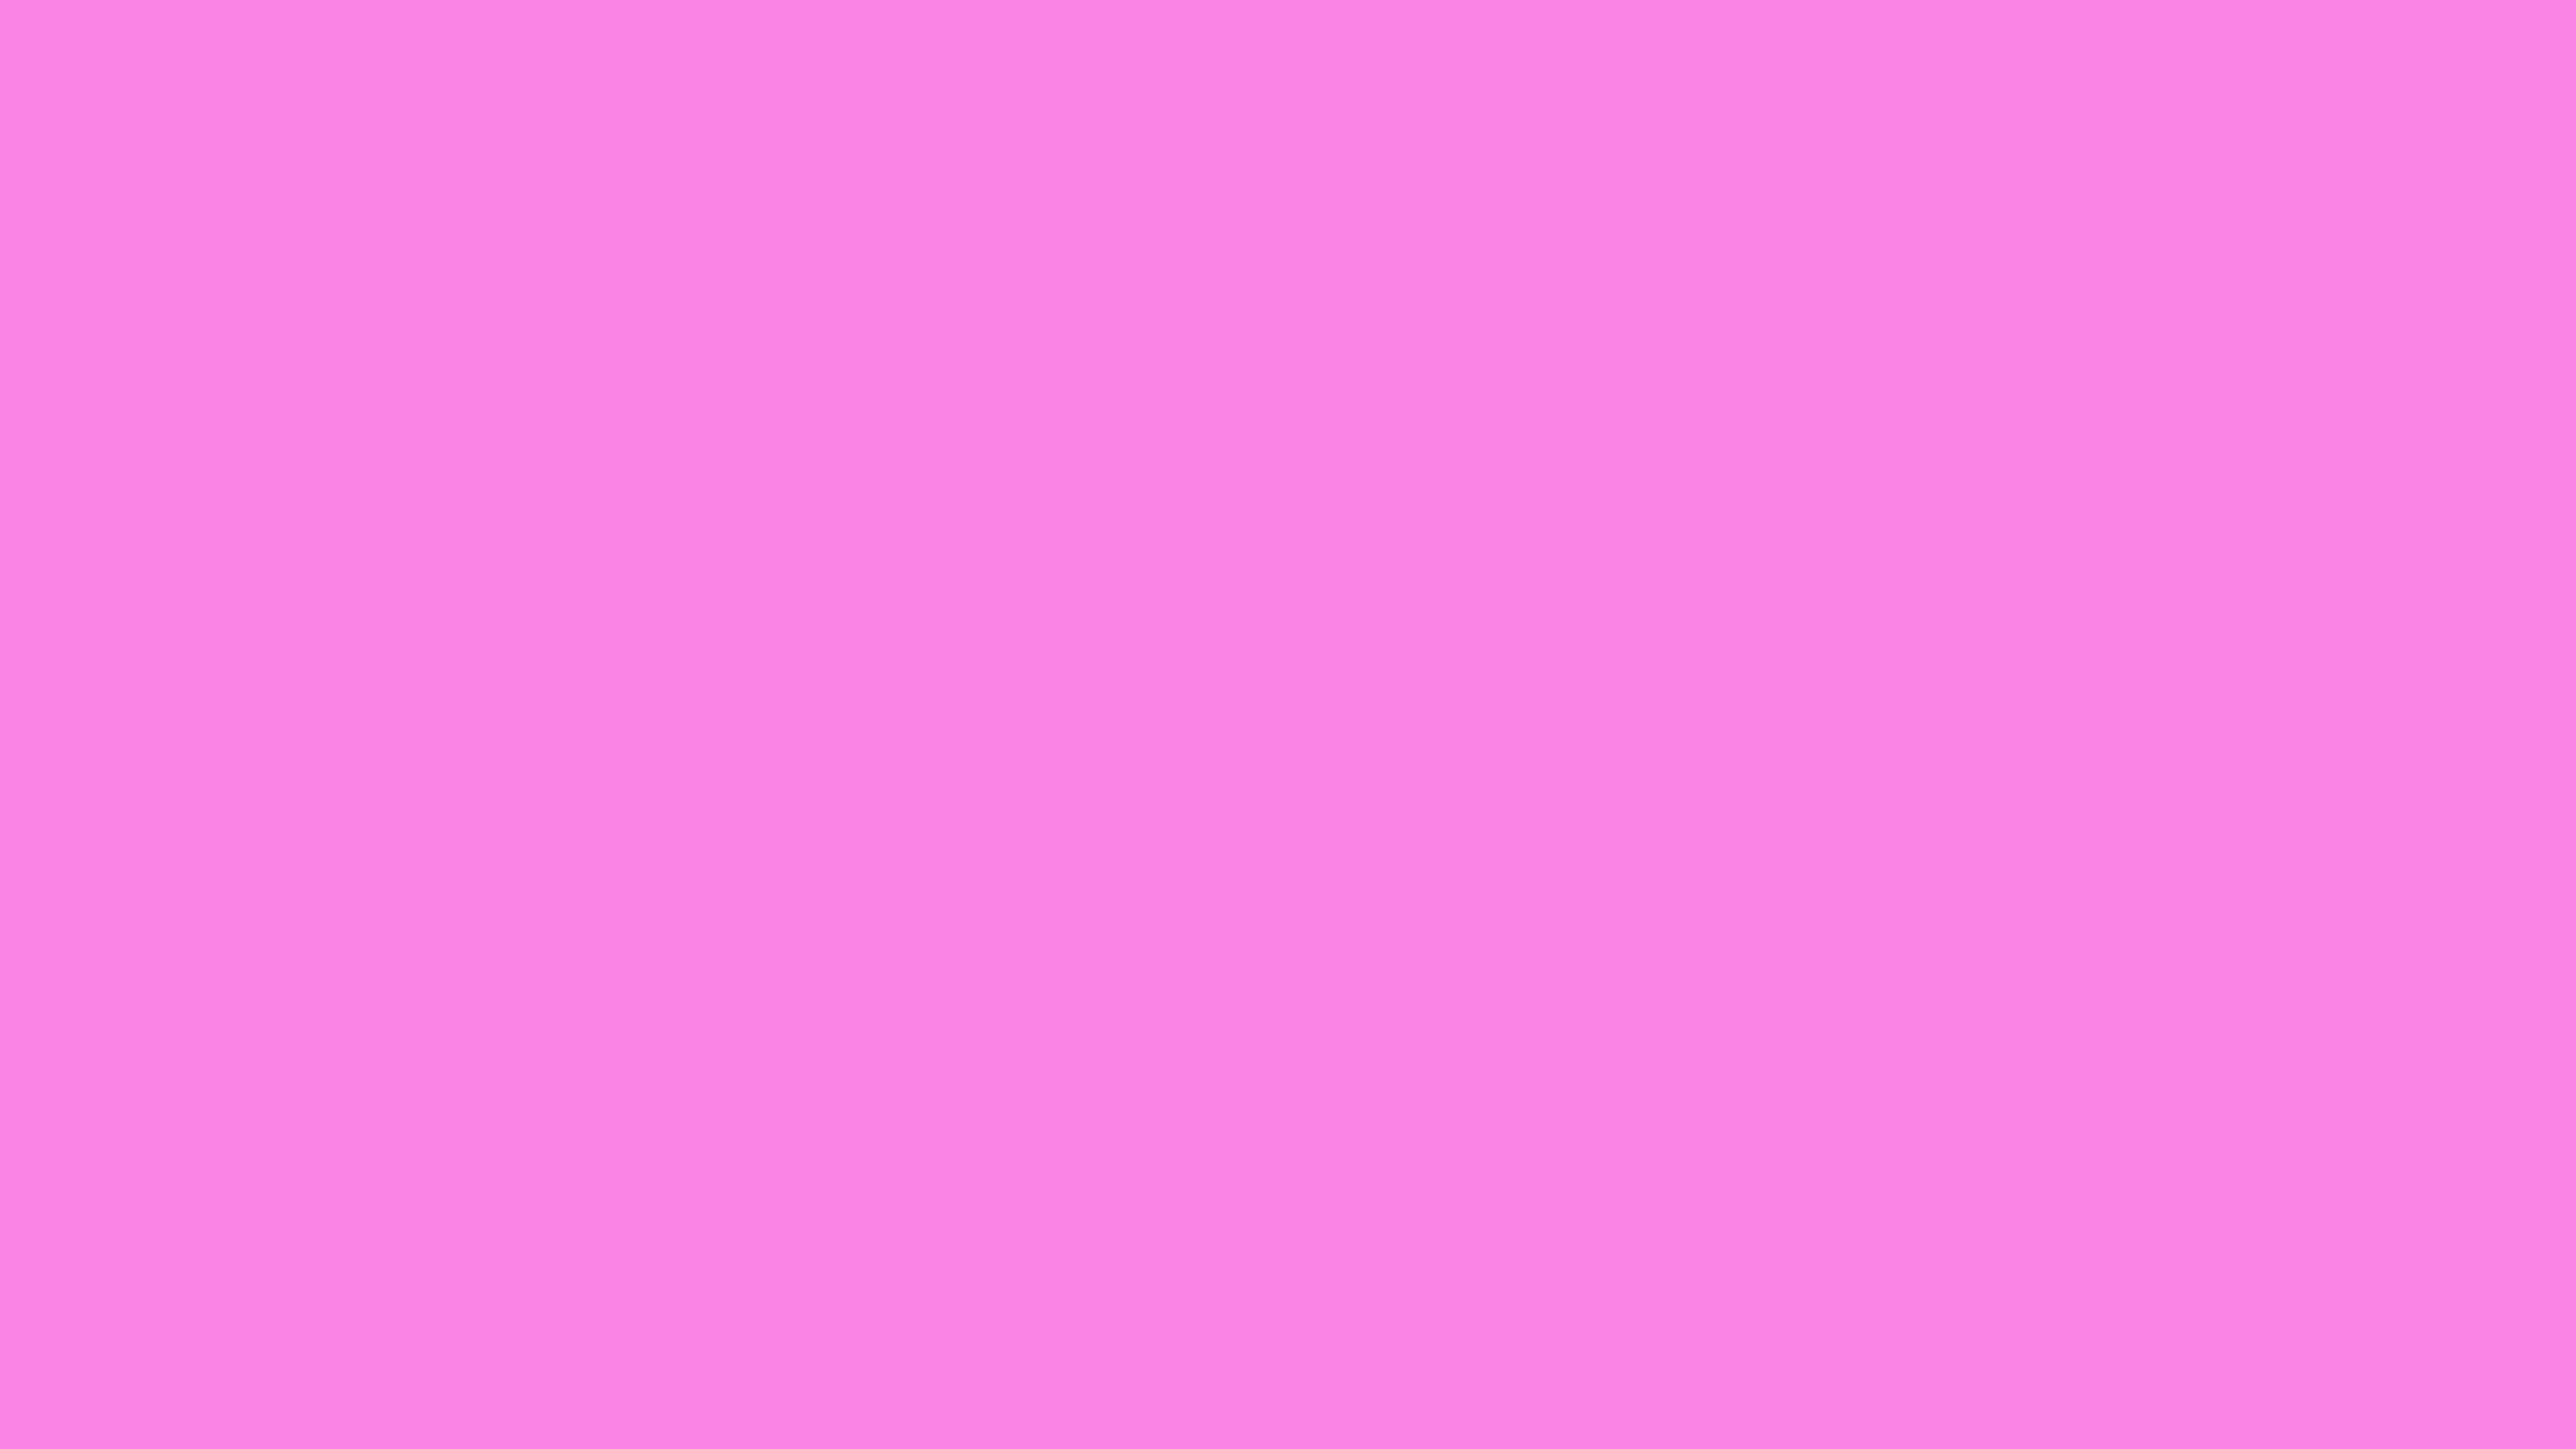 5120x2880 Pale Magenta Solid Color Background